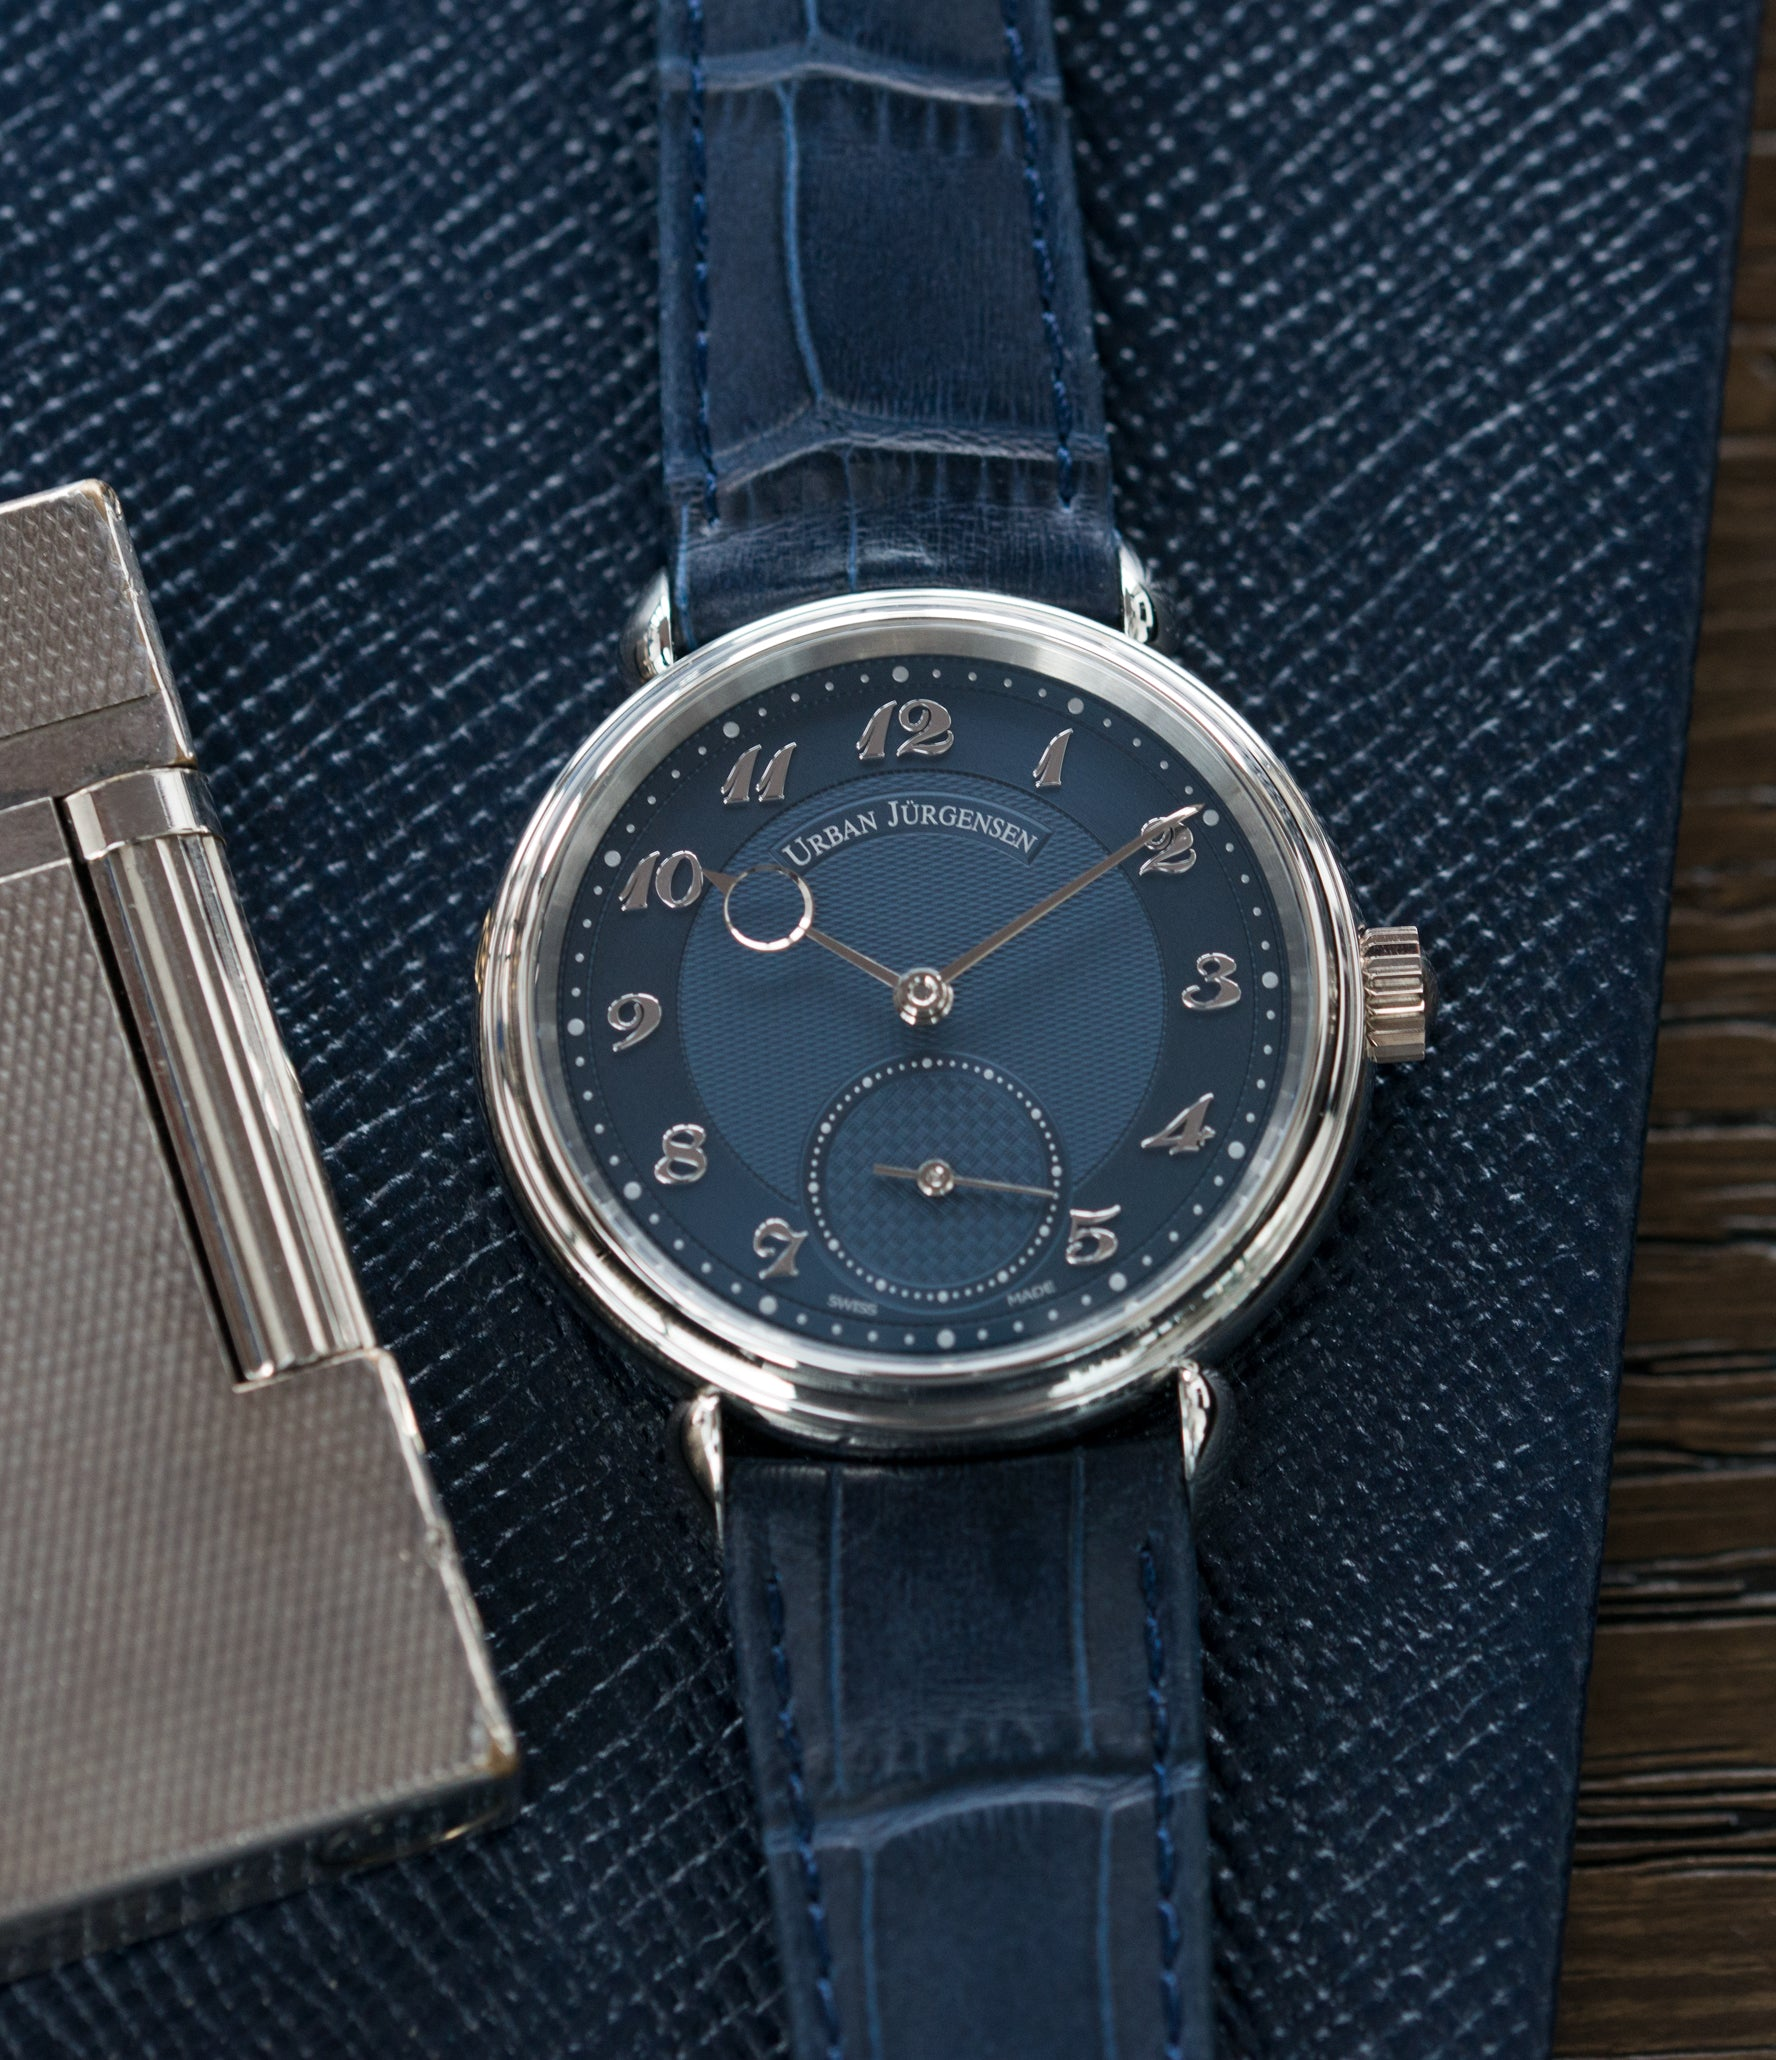 buy men's luxury dress watch Urban Jurgensen 1140 PT Blue dial watch online at A Collected Man London independent watchmaker specialist authorised retailer in the UK